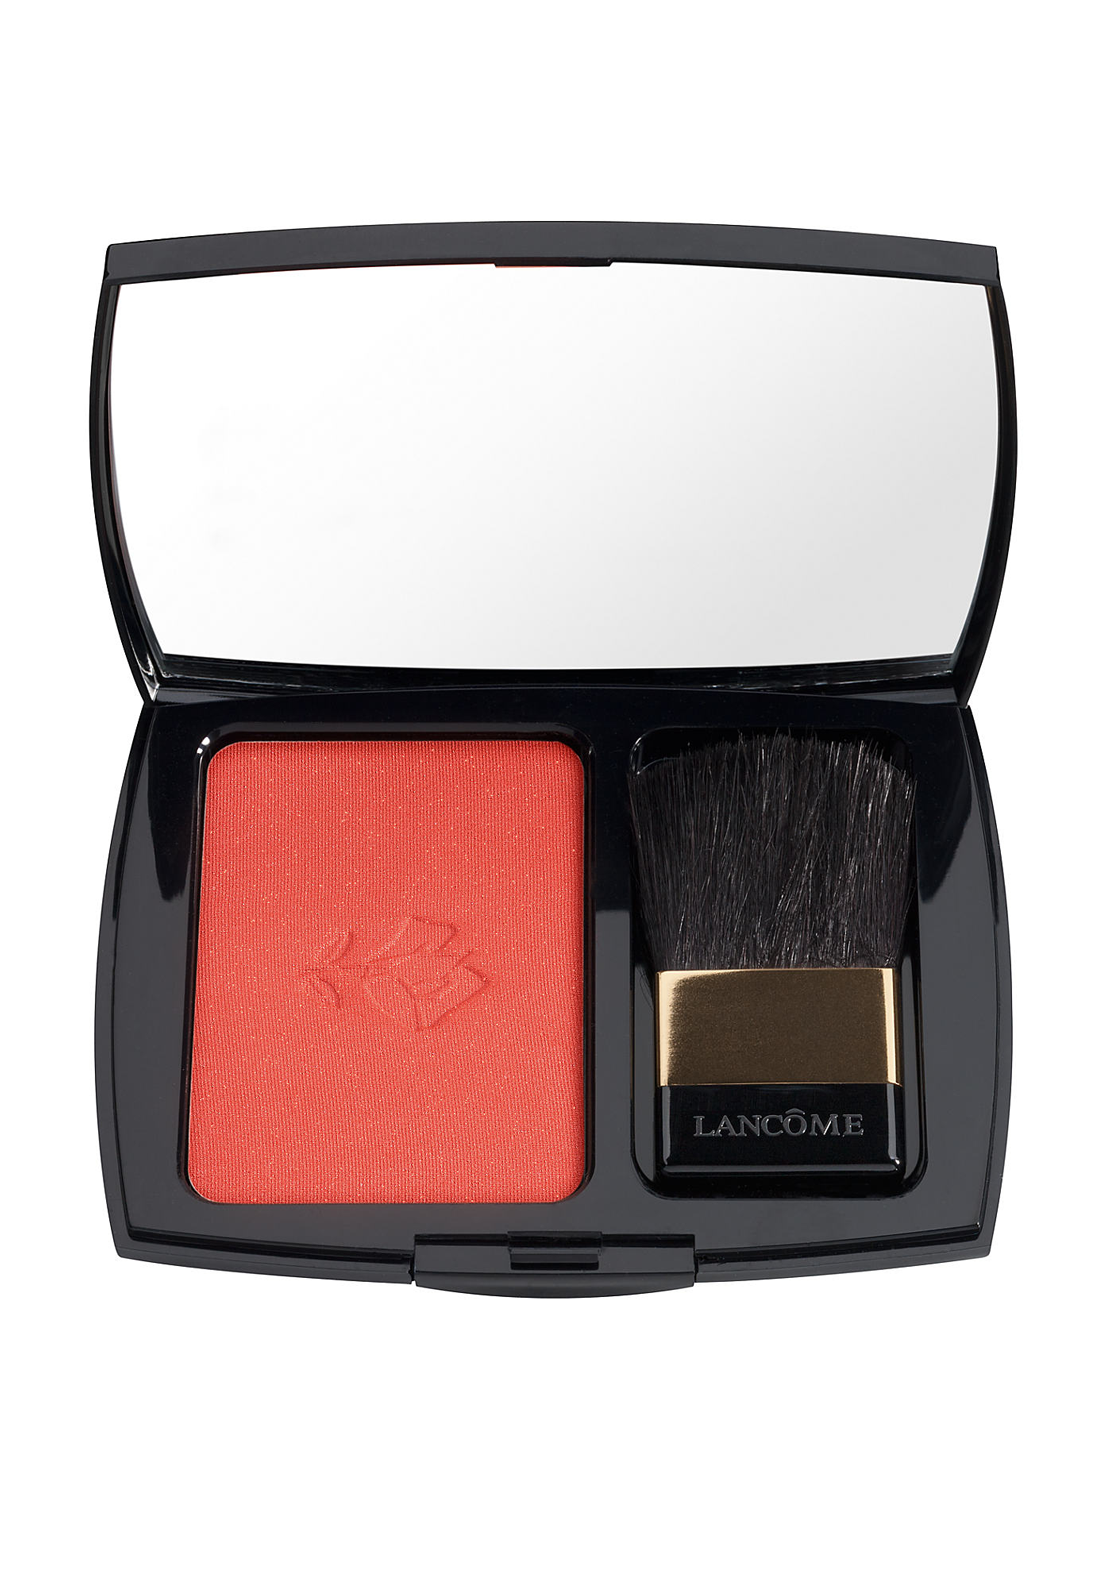 Lancome Blush Subtil Long Lasting Powder Blusher, 032